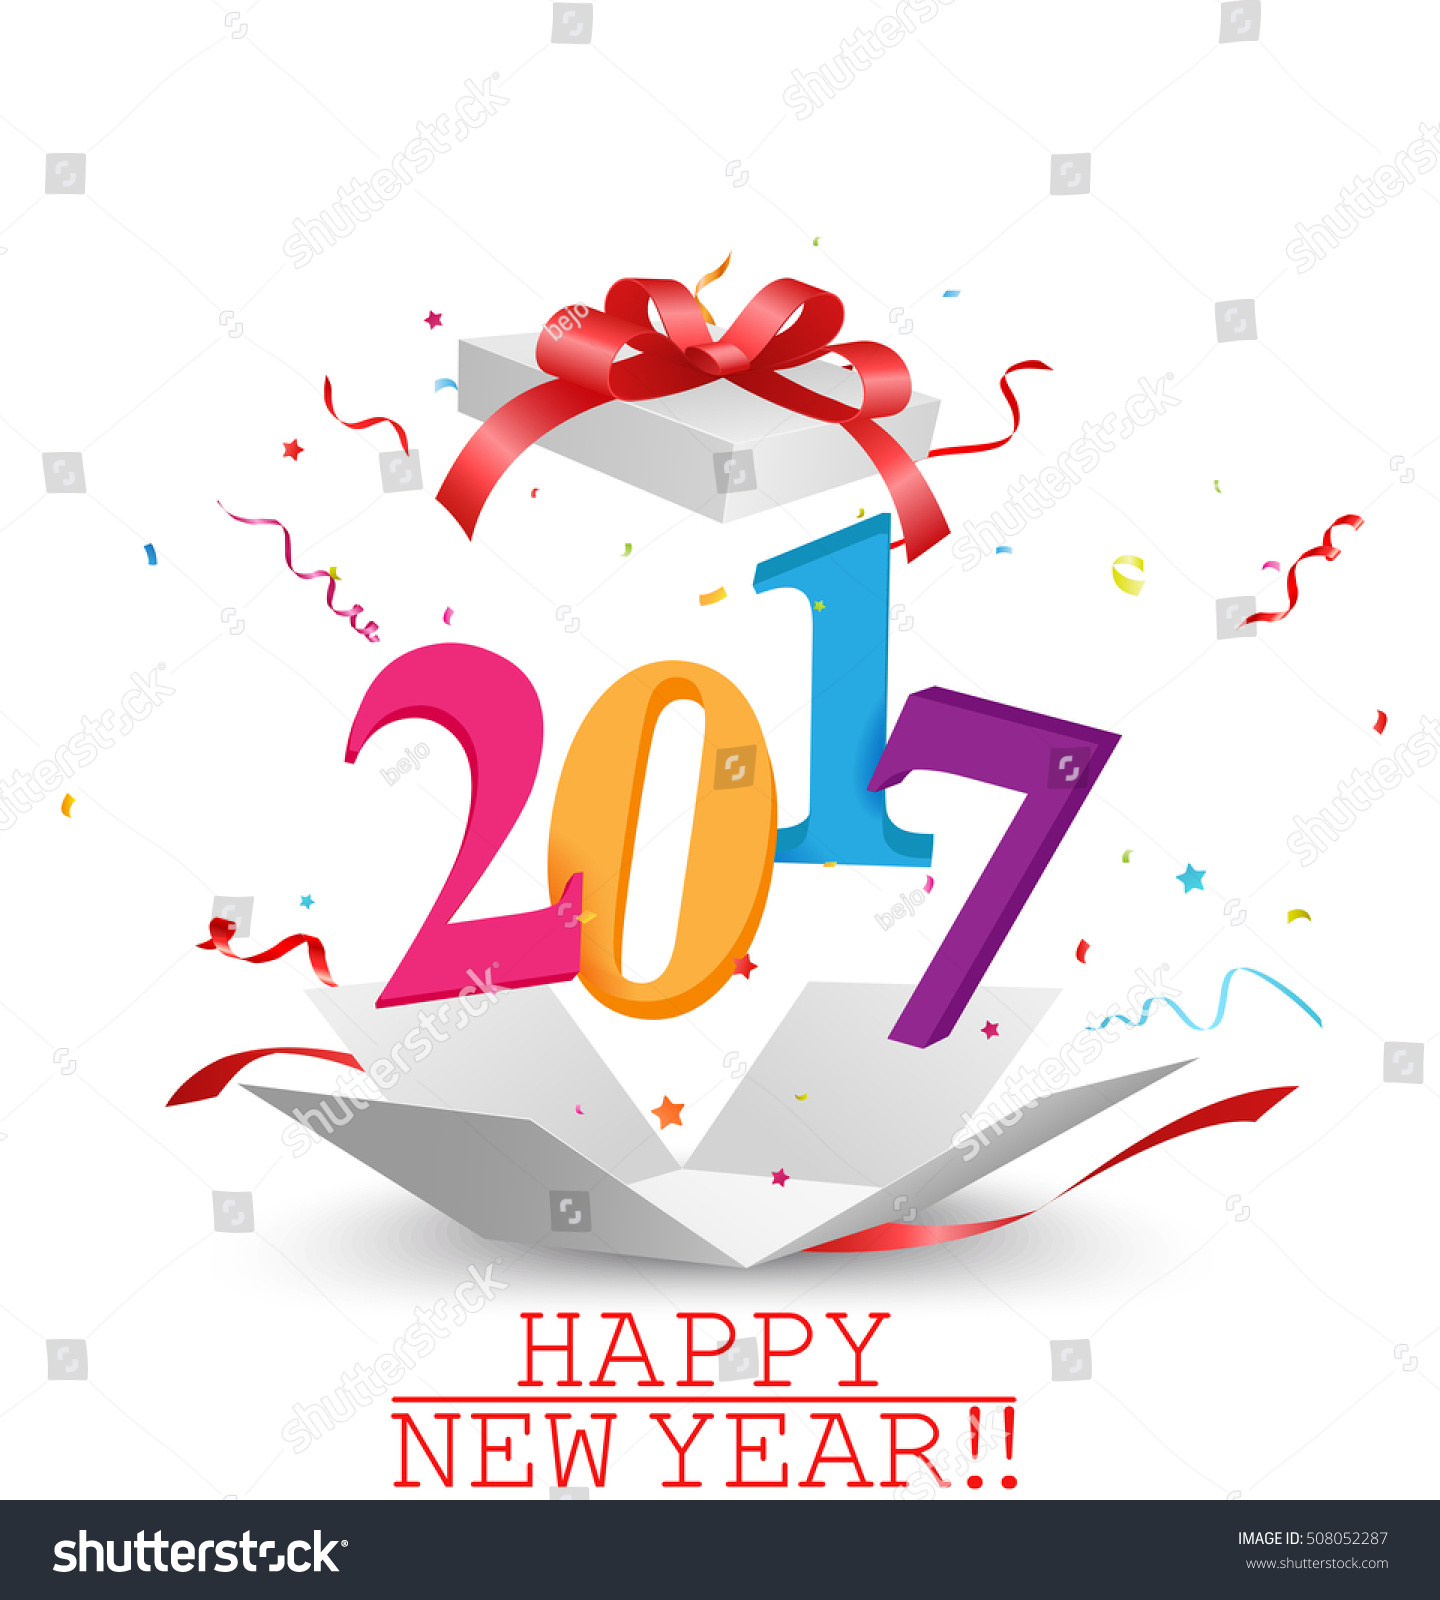 Happy New Year Greeting Card Design Stock Illustration ...